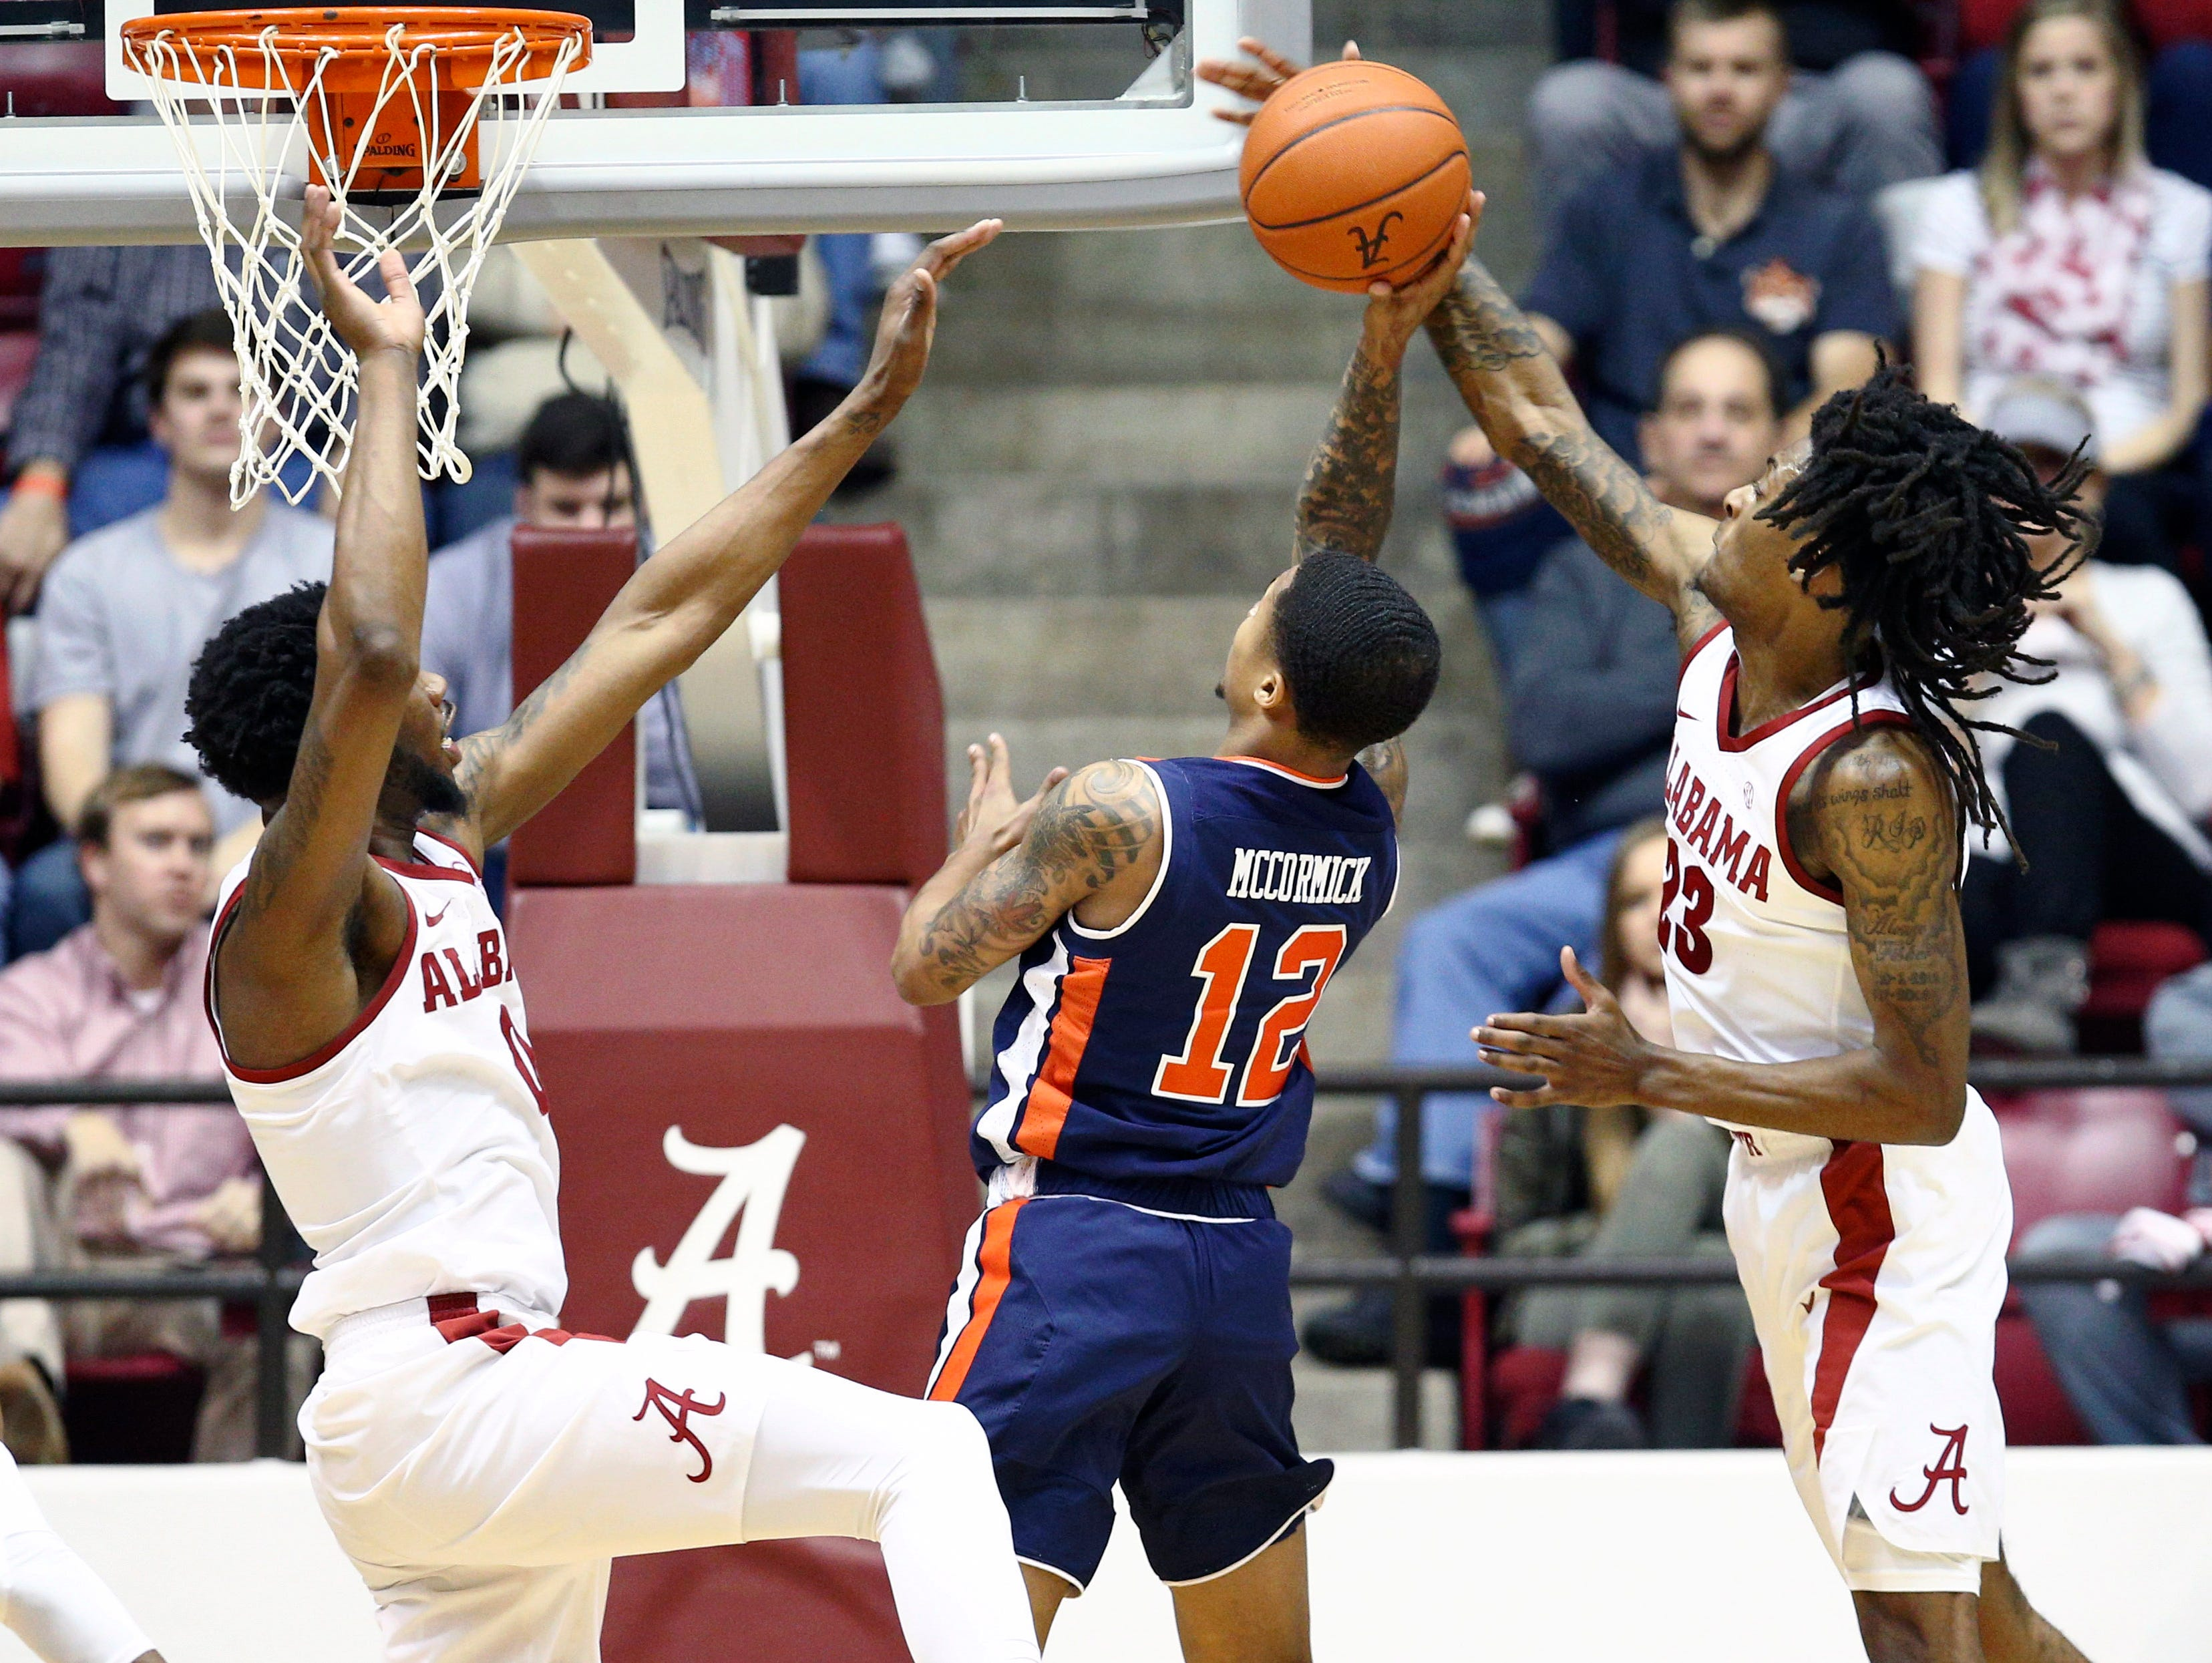 Mar 5, 2019; Tuscaloosa, AL, USA; Alabama Crimson Tide guard John Petty (23) knocks the shot of Auburn Tigers guard J'Von McCormick (12) during the second half at Coleman Coliseum. Mandatory Credit: Marvin Gentry-USA TODAY Sports